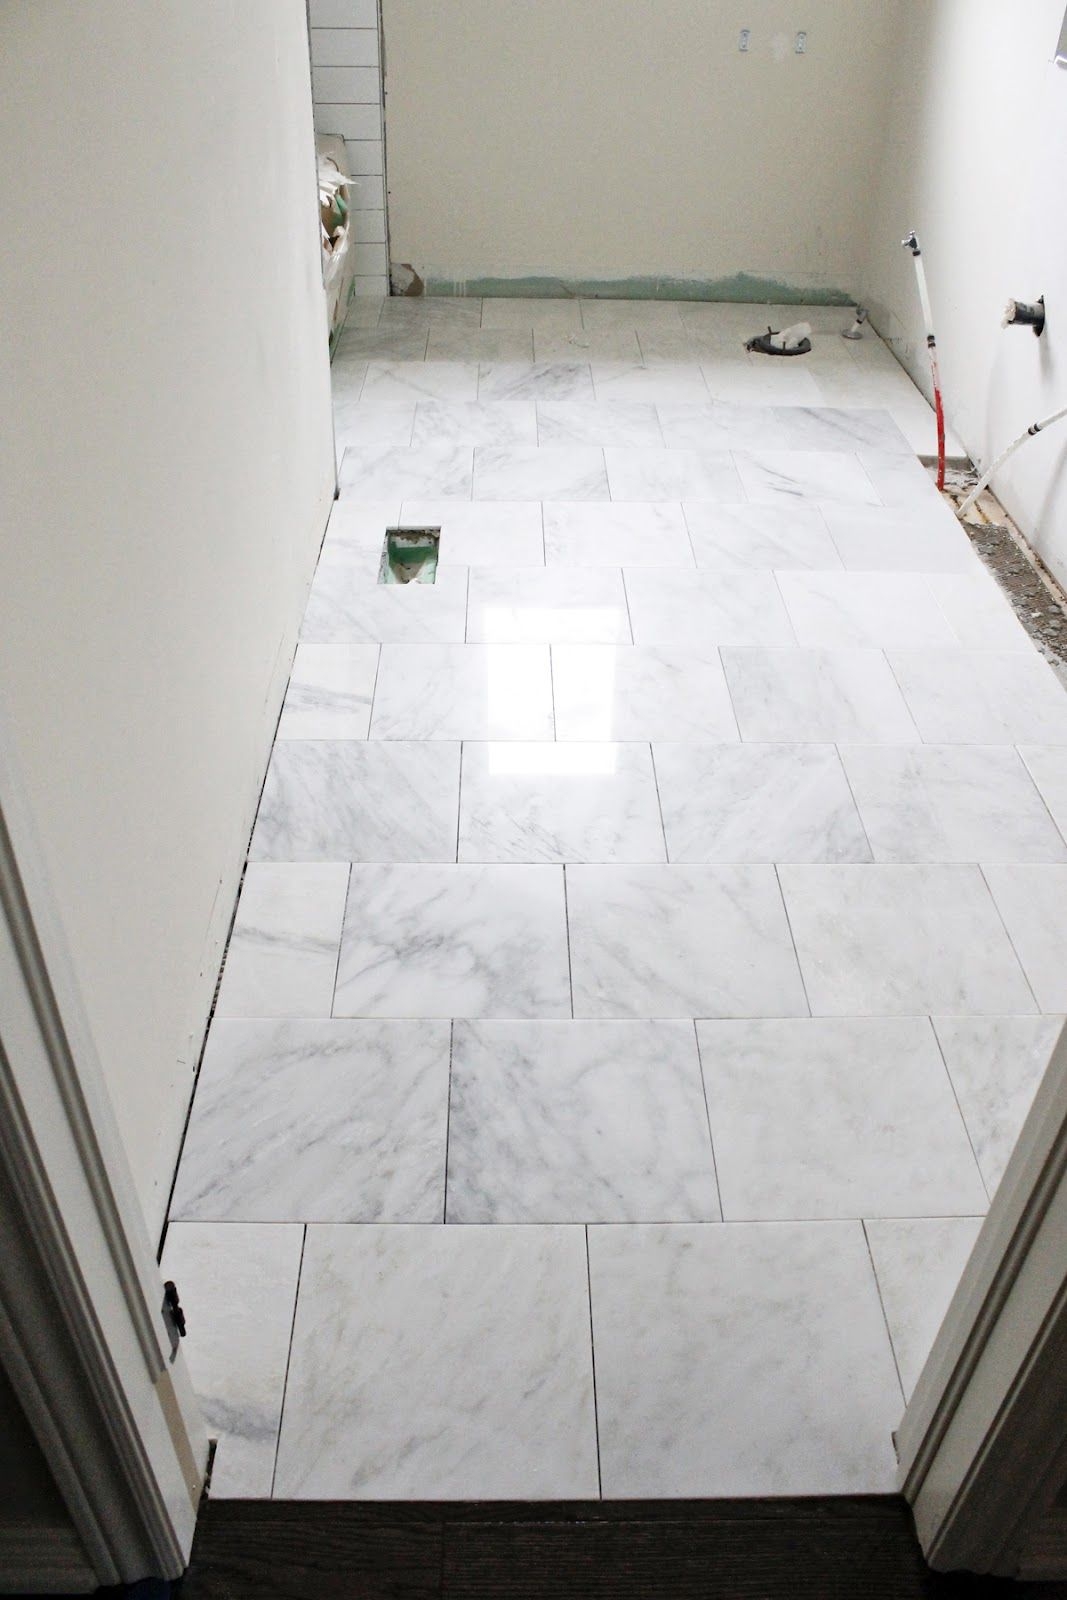 Brick Pattern Marble Floors Tile Floor Tile Bathroom Bathroom Floor Tiles